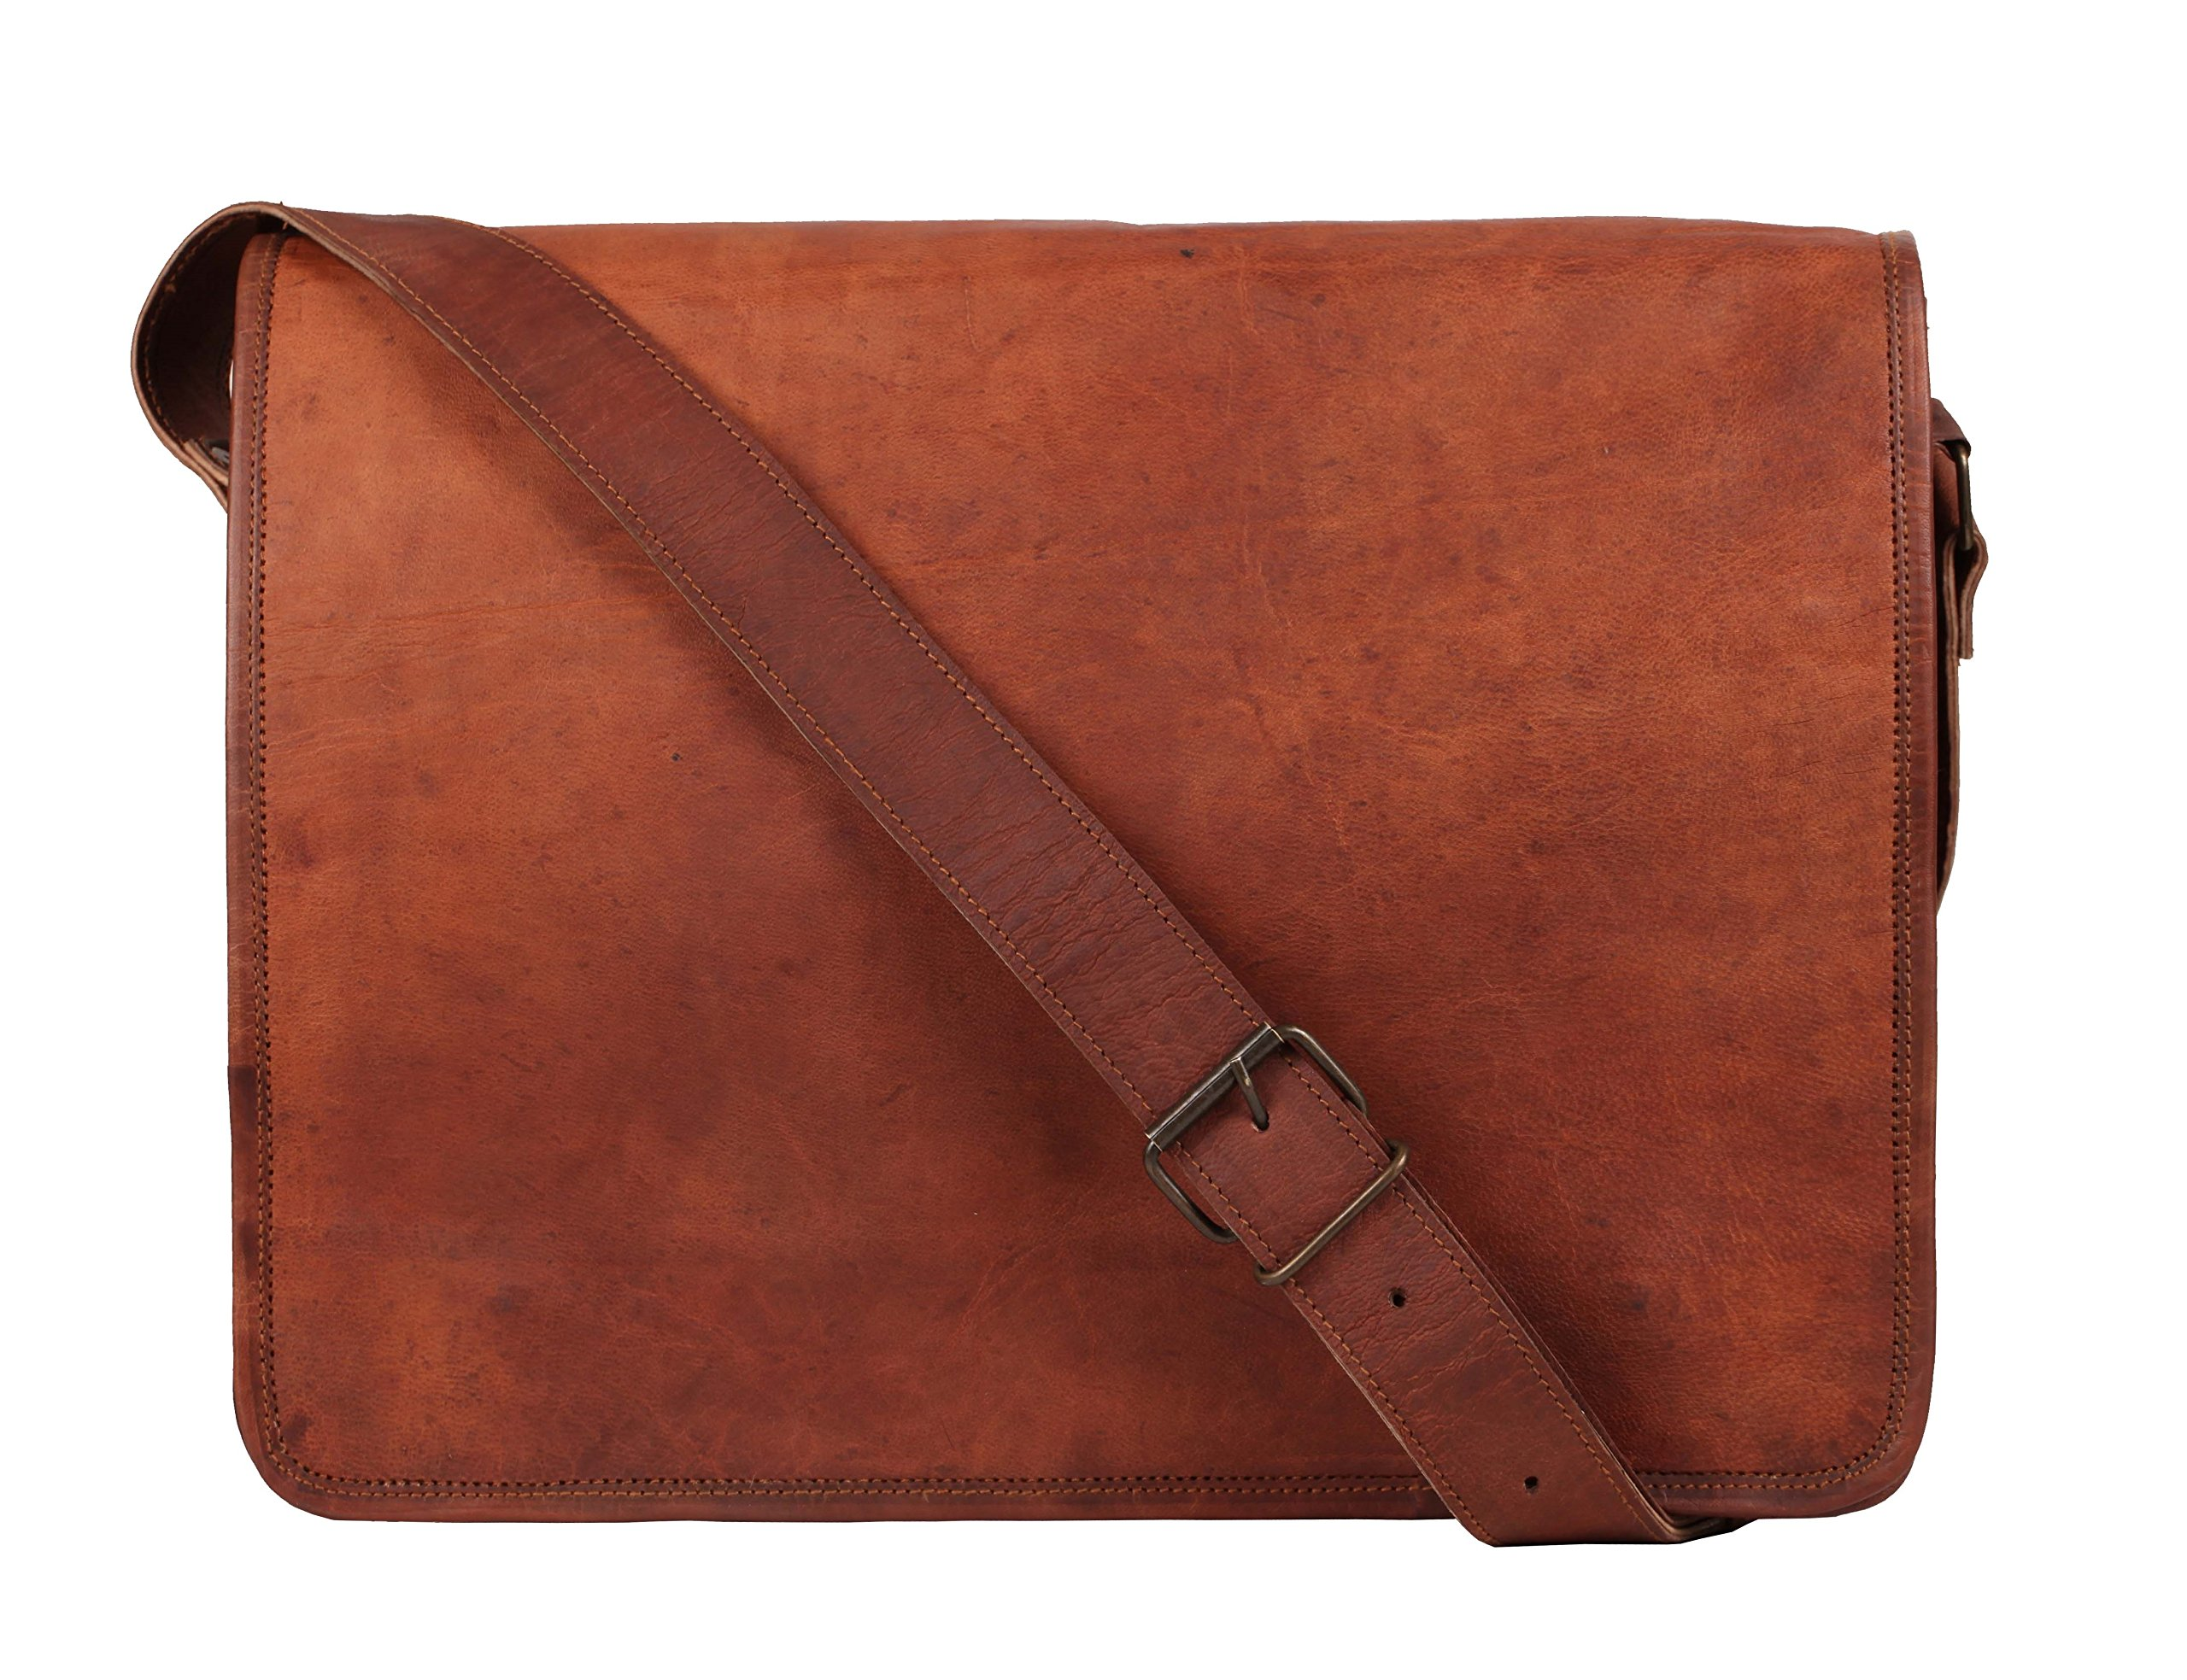 Rustic Town 13 inch Vintage Crossbody Genuine Leather Laptop Messenger Bag by Rustic Town